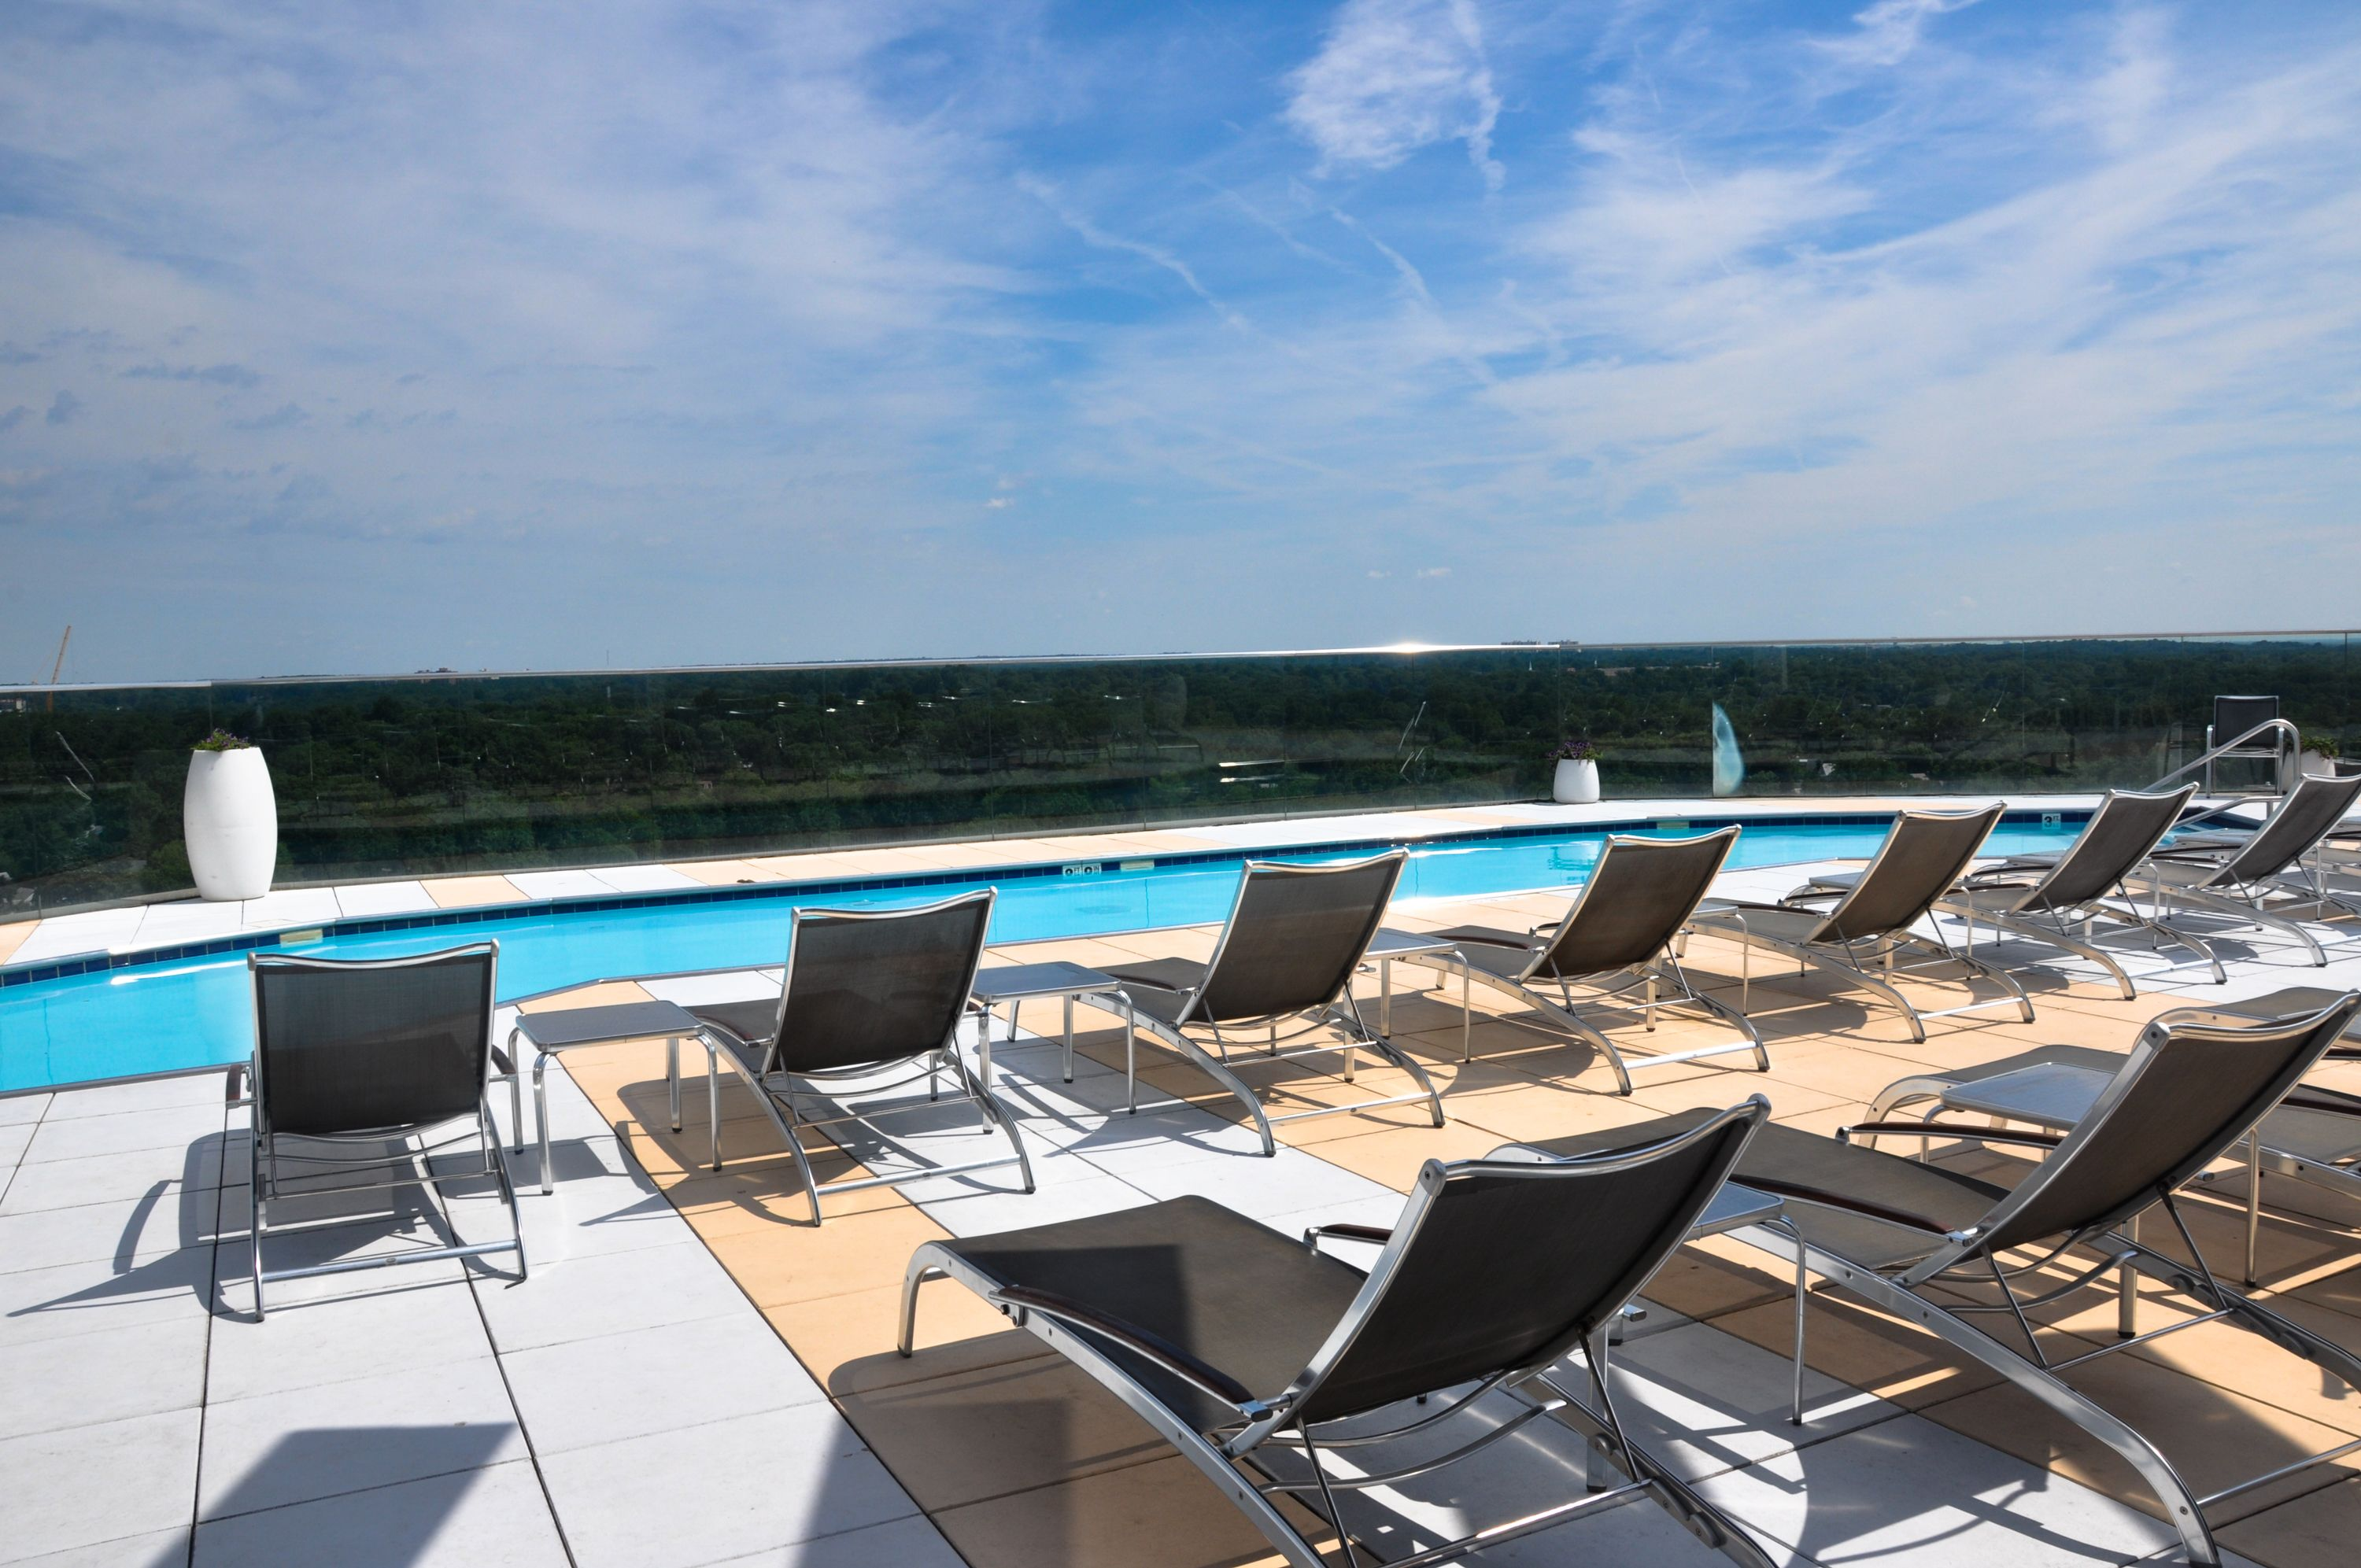 The Point At Silver Spring Apartments Md Resort Style Rooftop Pool Ow Ly Zrqyx Rooftop Pool Apartmentbuildin Rooftop Pool Resort Style Apartment Building